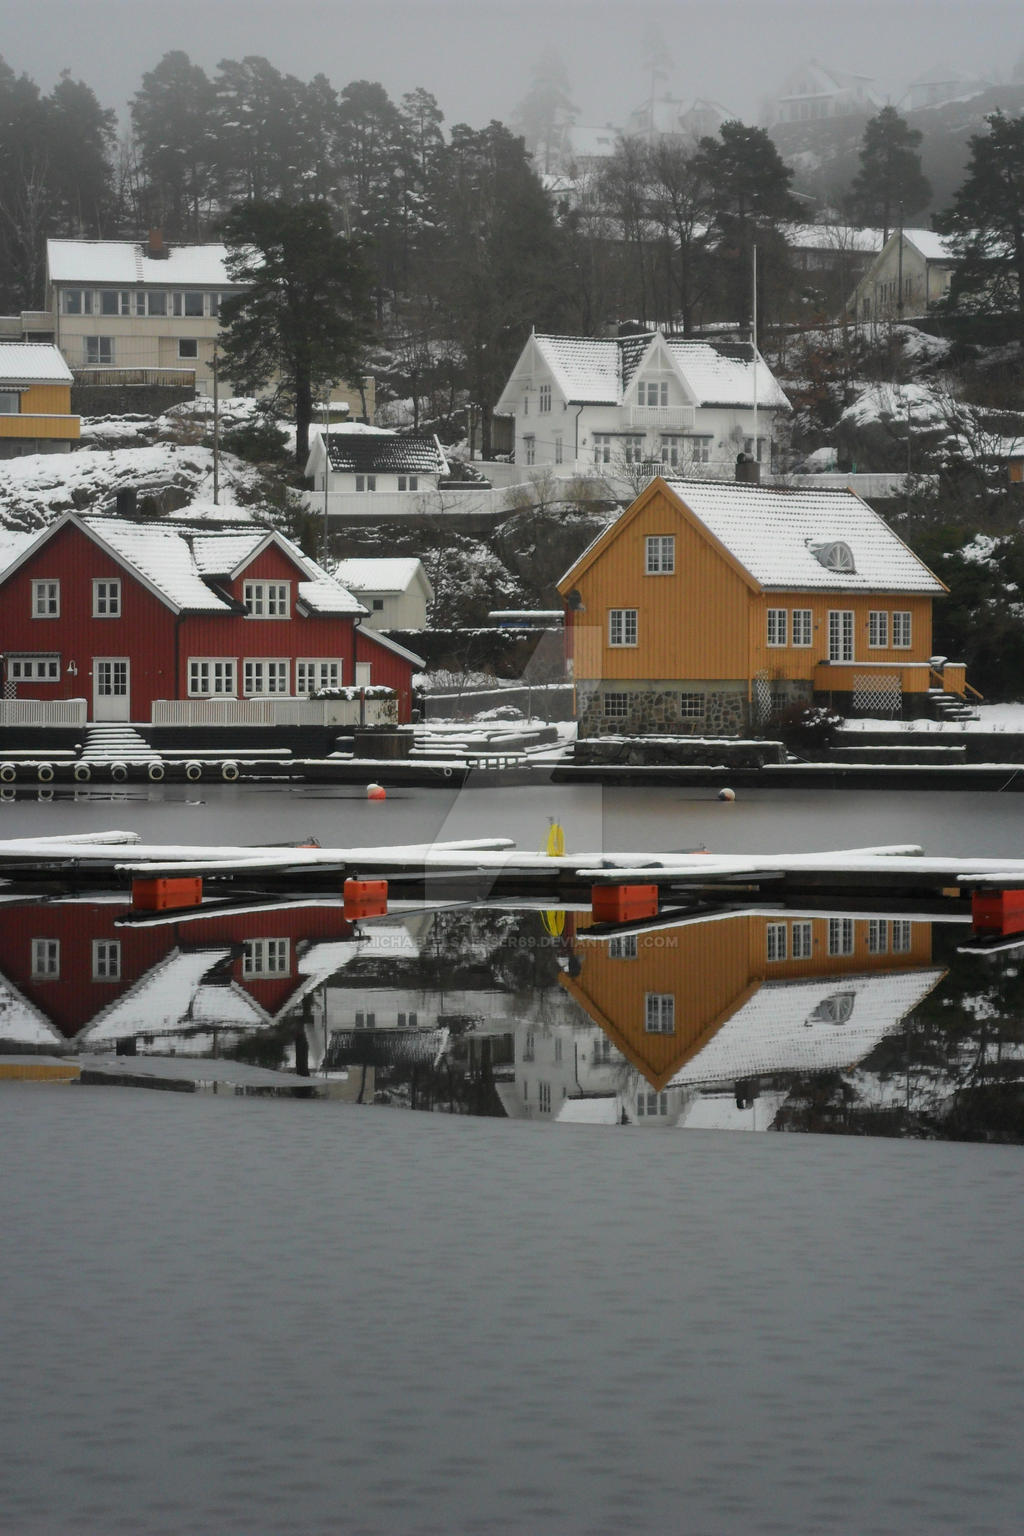 reflections 002 by michaelelsaesser69